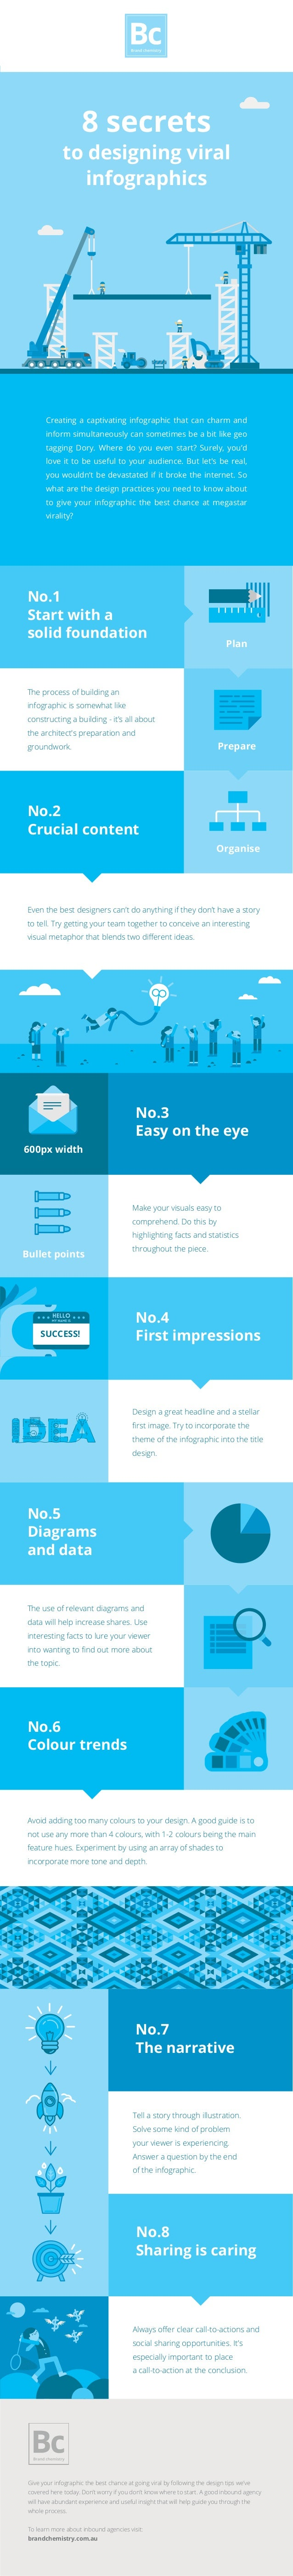 8 secrets to designing viral infographics Plan Prepare Organise Creating a captivating infographic that can charm and info...